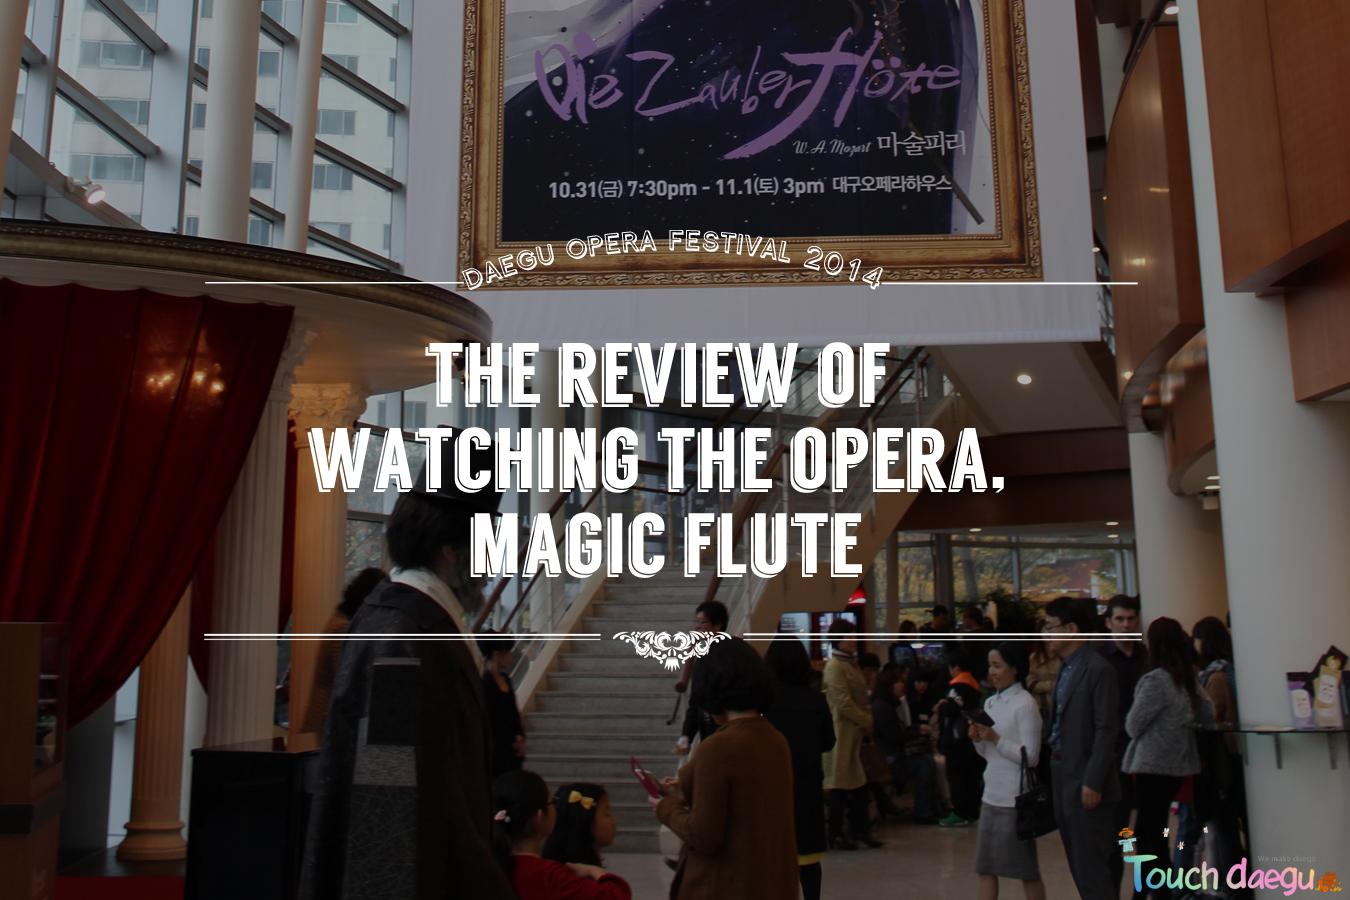 The review of Magic Flute